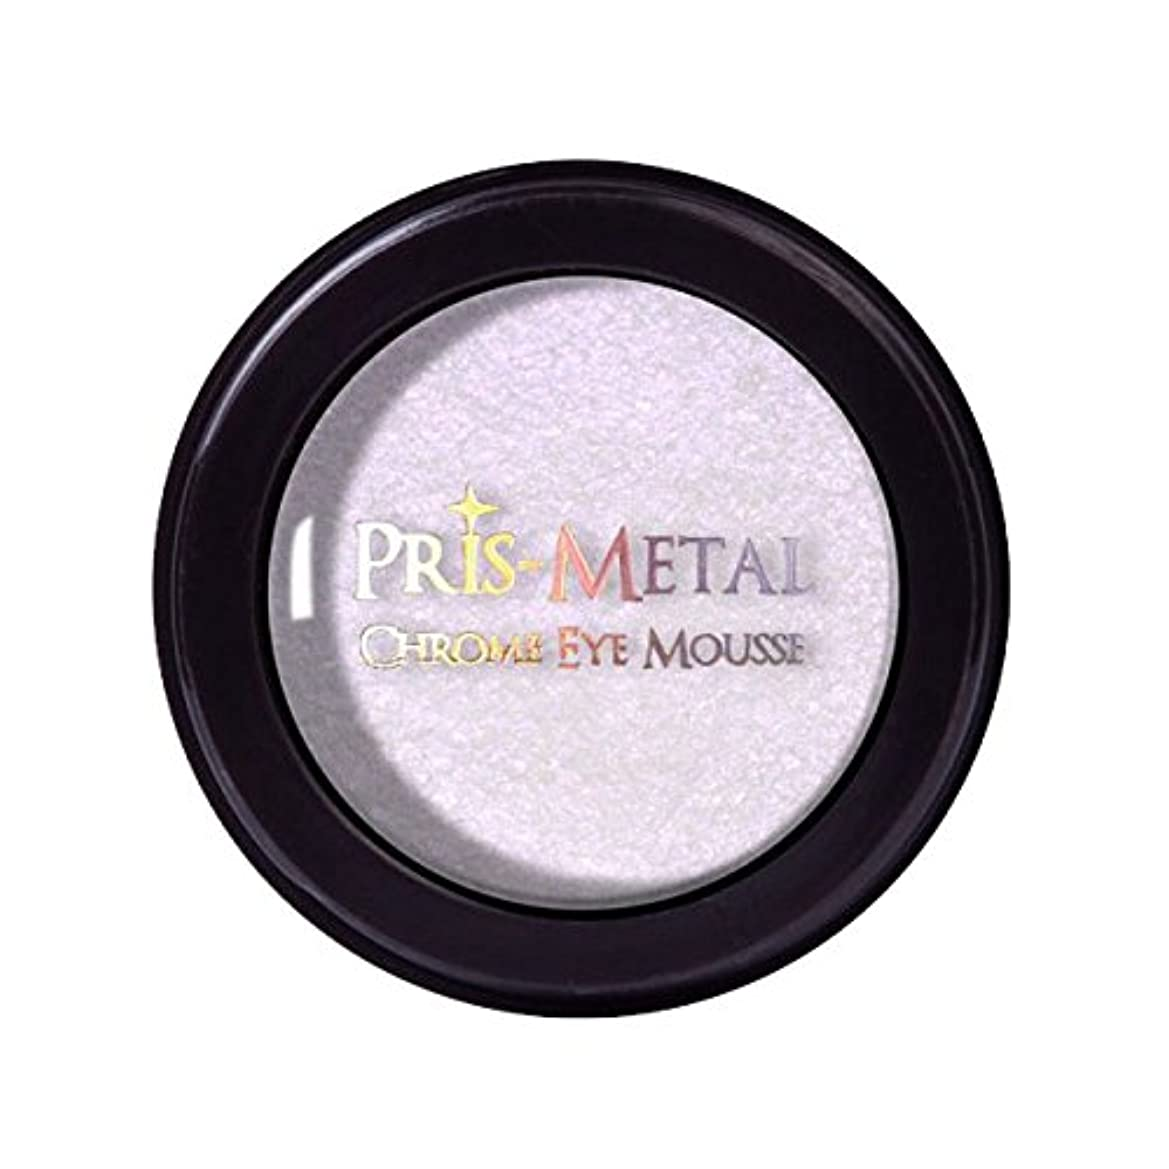 犯罪告白する遅らせる(3 Pack) J. CAT BEAUTY Pris-Metal Chrome Eye Mousse - Pinky Promise (並行輸入品)